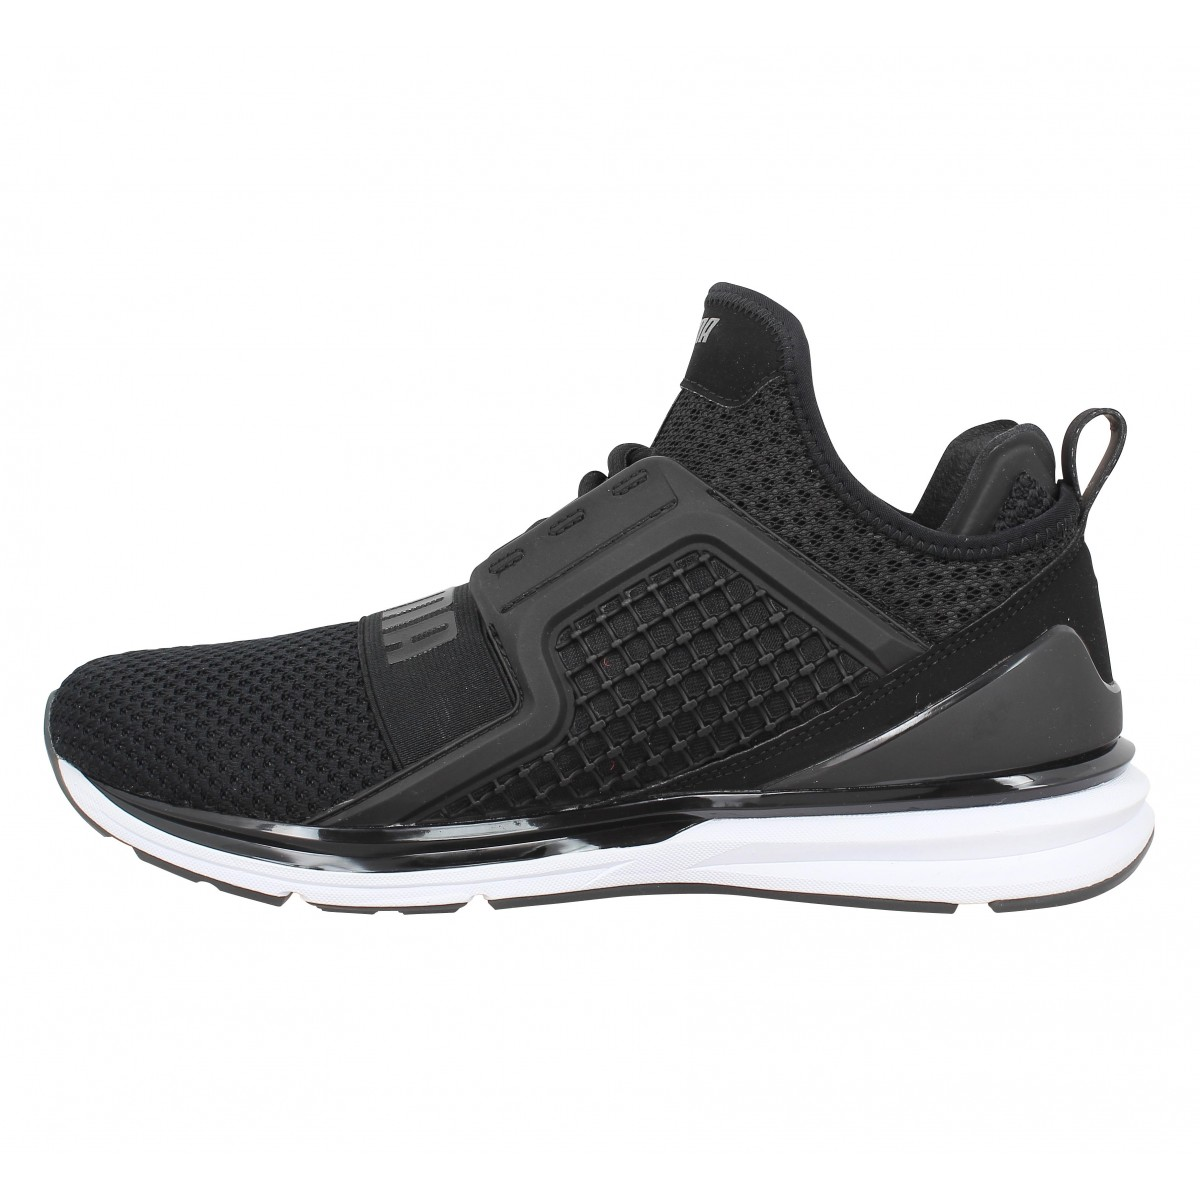 Chaussures Puma ignite limitless weave toile homme noir homme ...